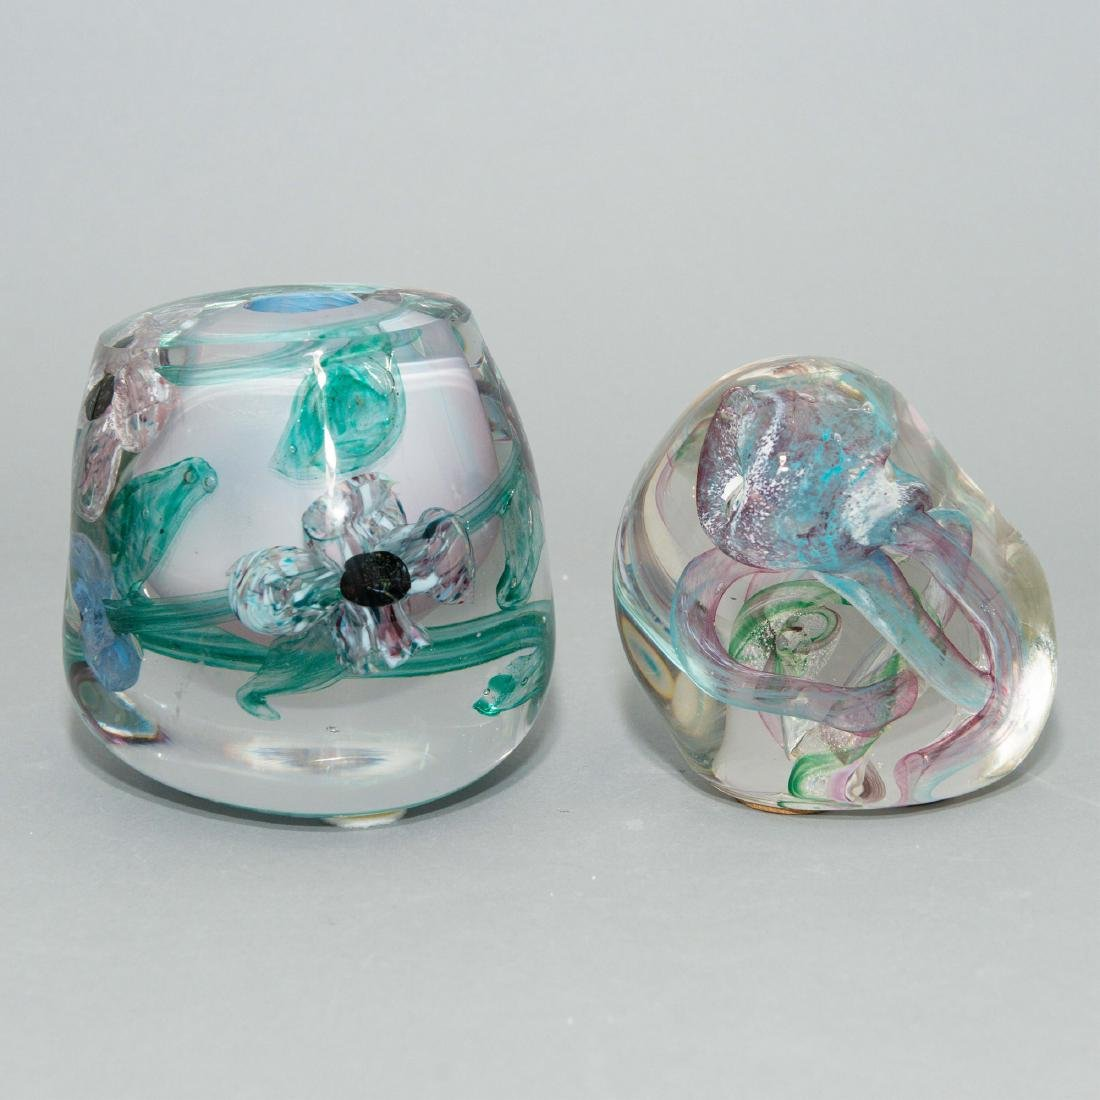 PAIR OF LISA LEYDON ART GLASS VASE AND SCULPTURE